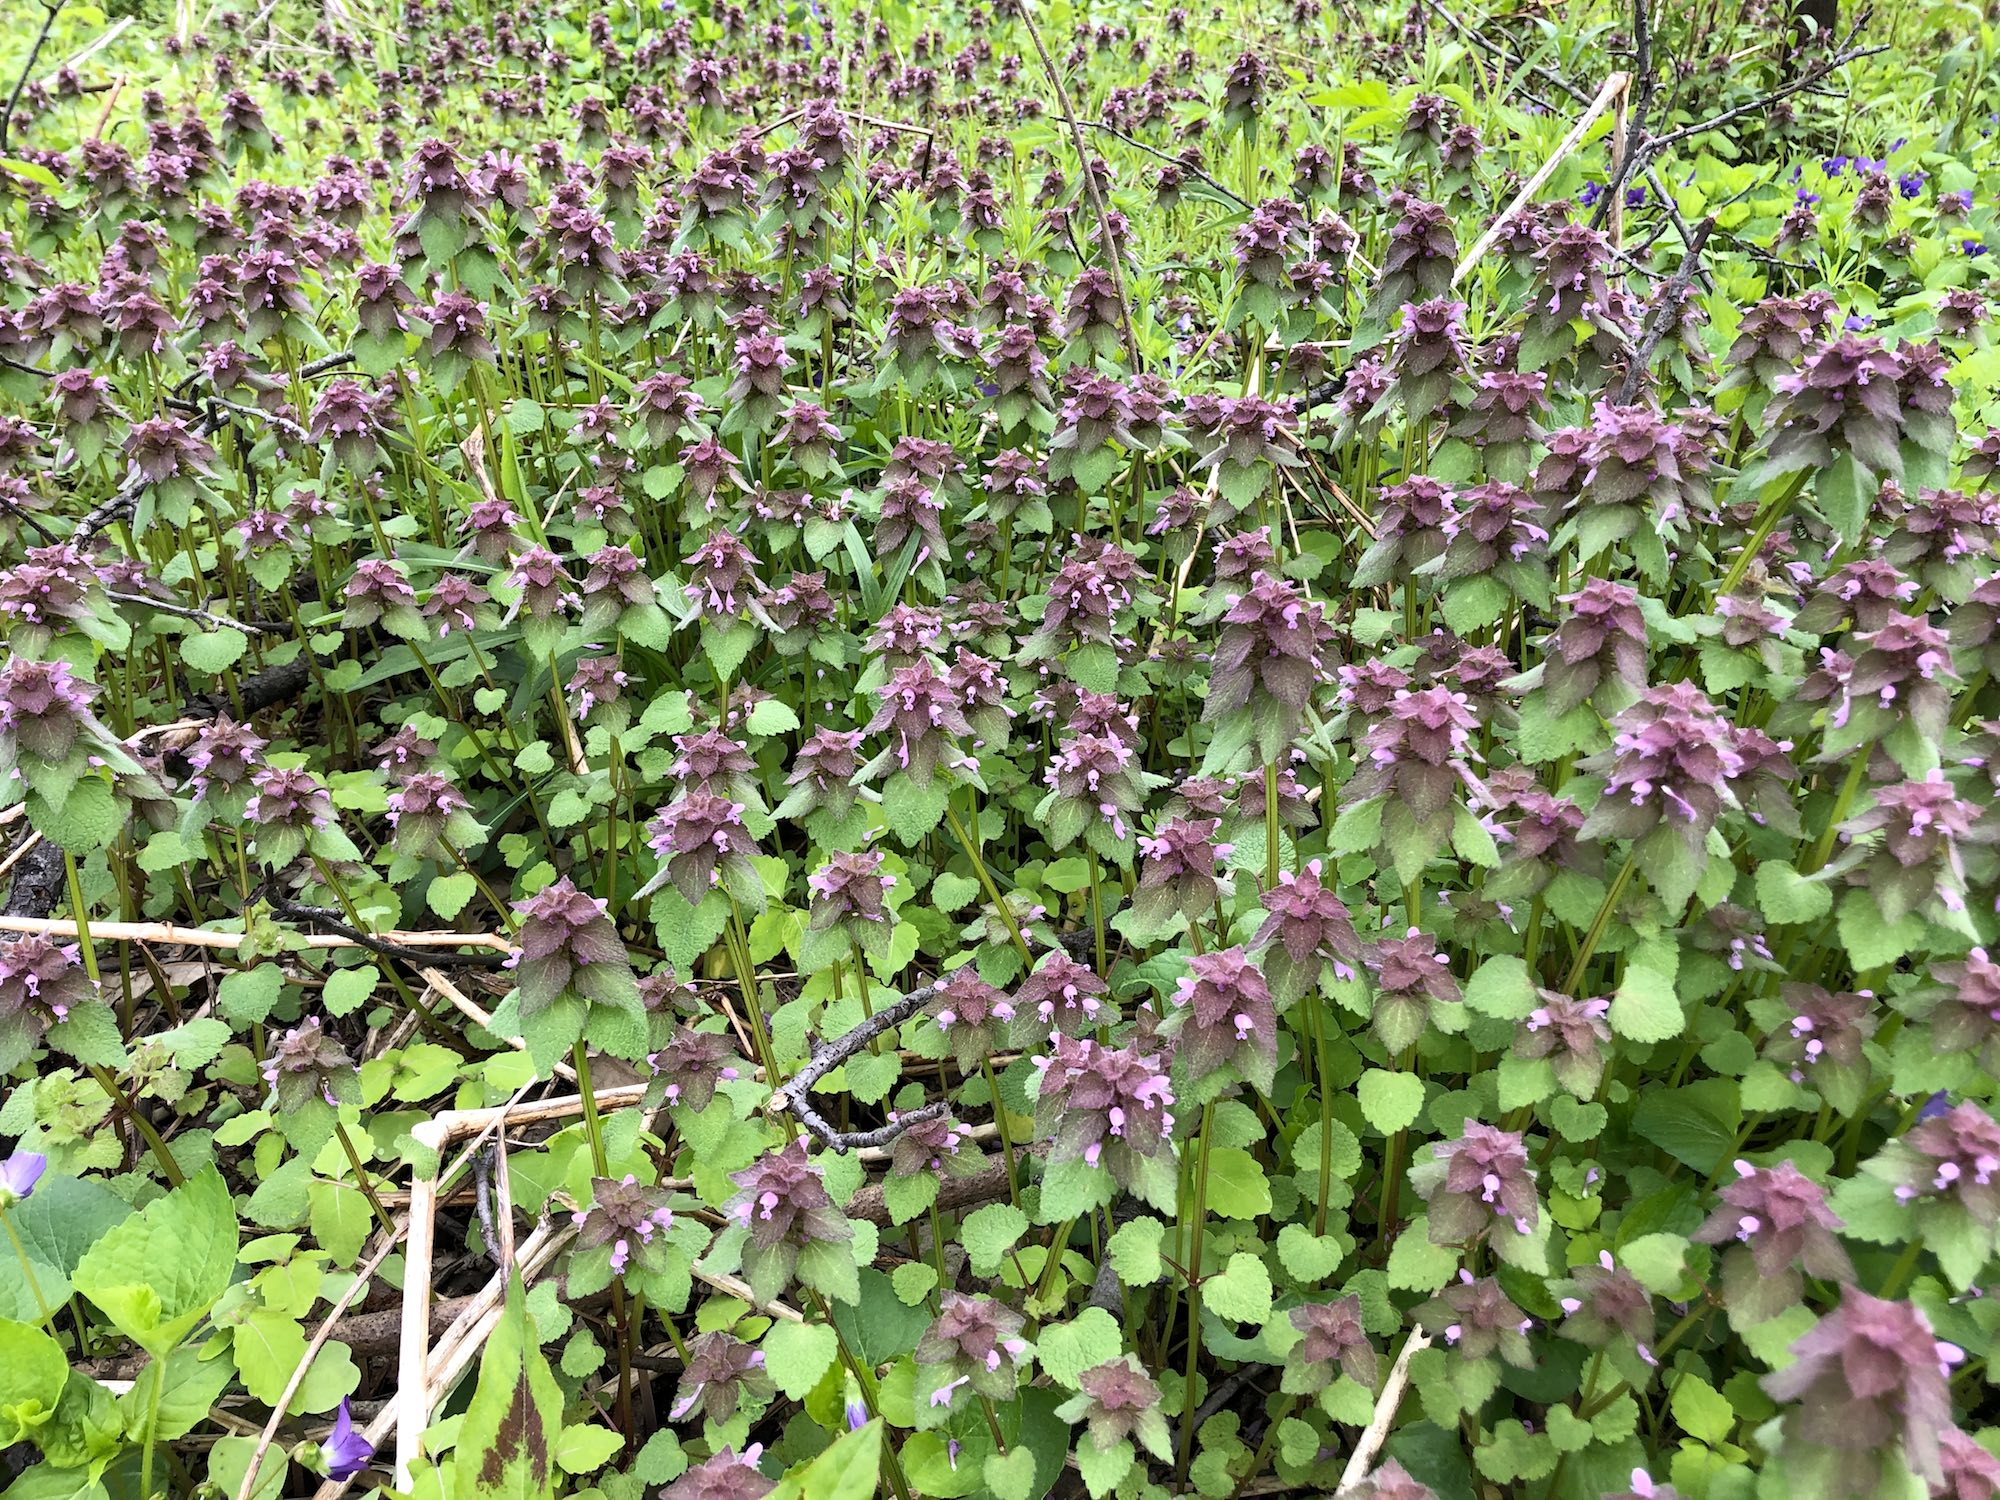 Purple Dead-Nettles in Oak Savanna in the U.W. Arboretum in Madison, Wisconsin on May 11, 2019.